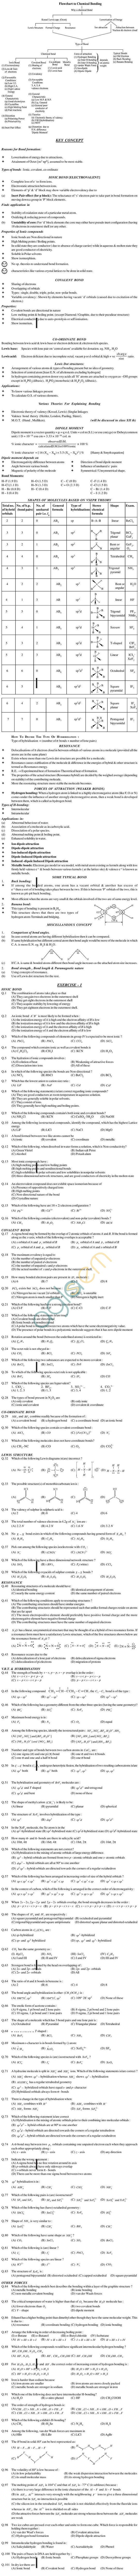 Chemistry Study Material - Chapter 4